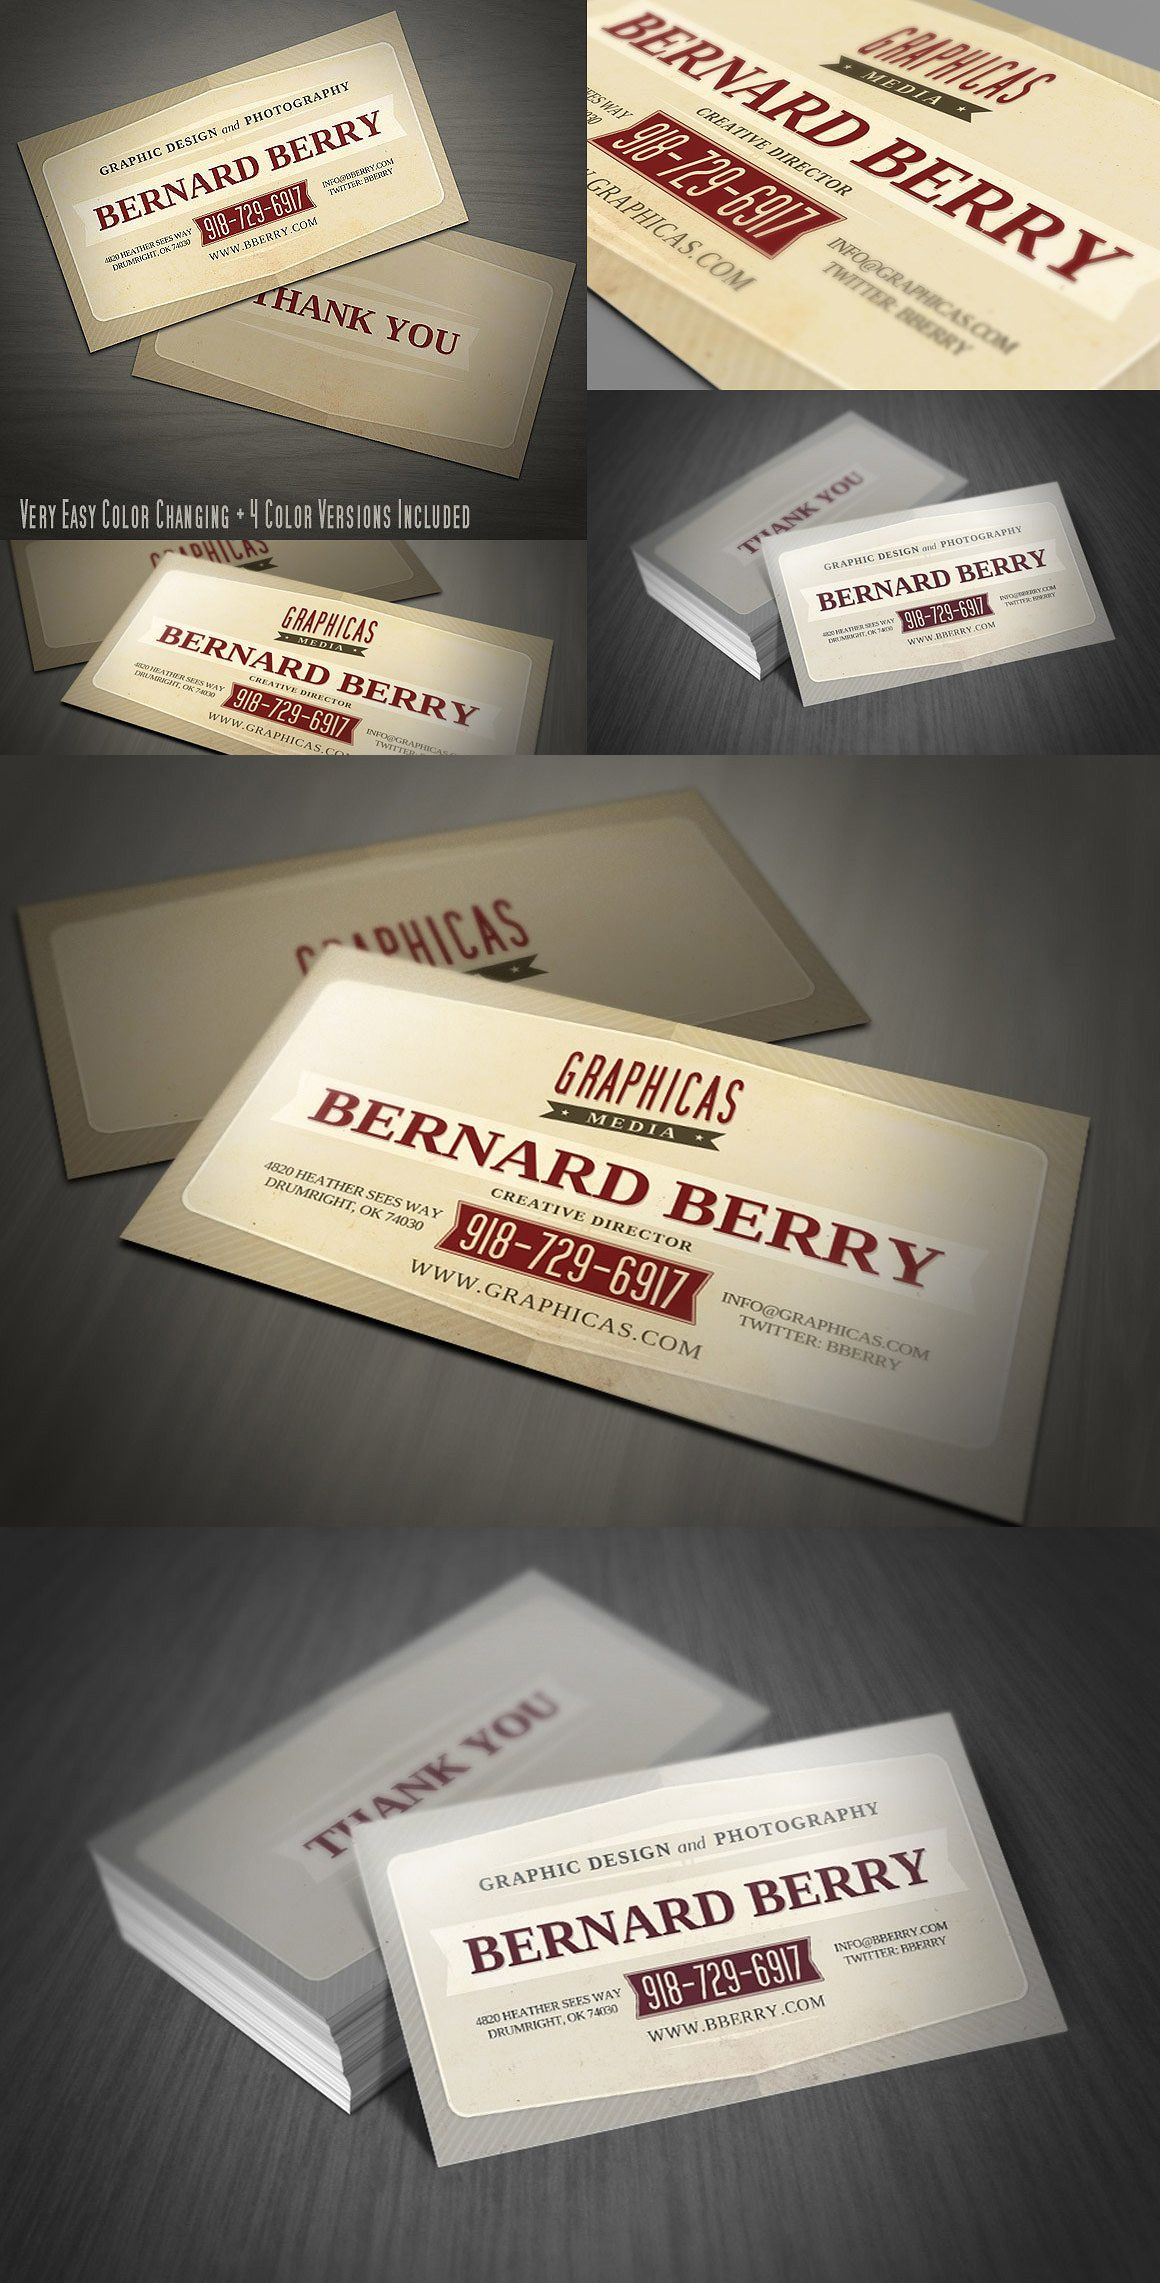 Retro business card template psd business card templates retro business card template psd flashek Gallery